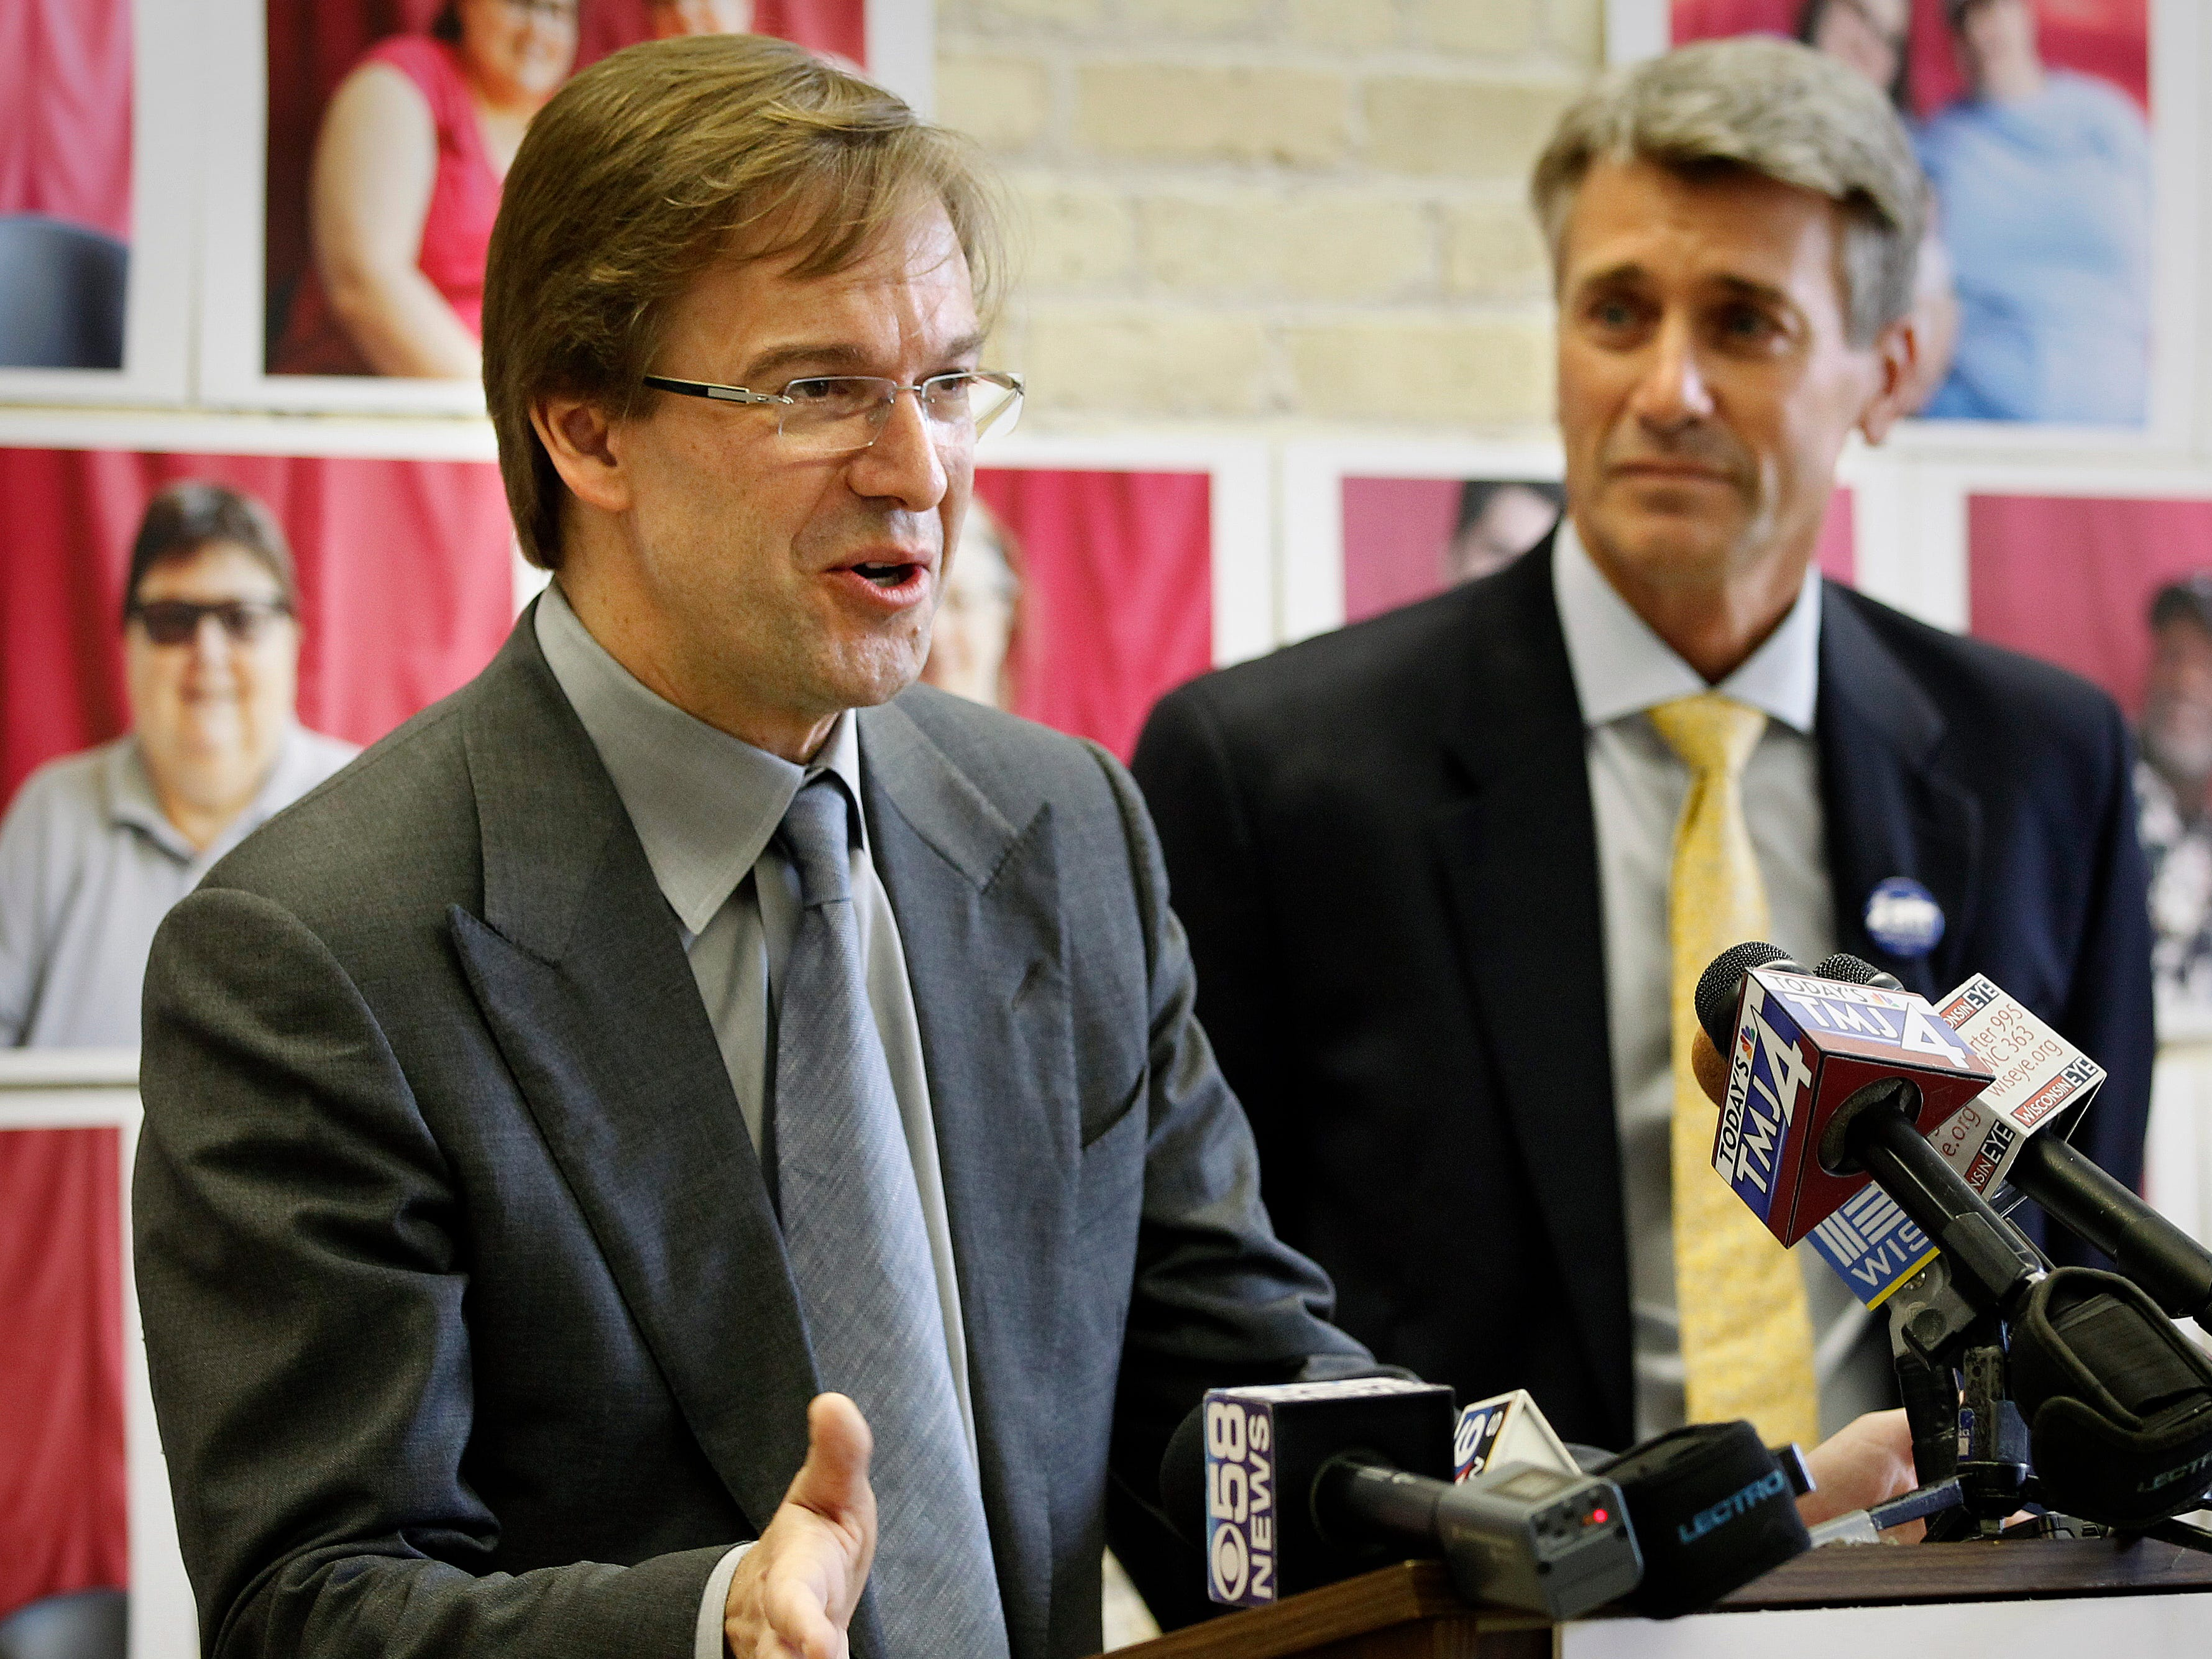 2013: Milwaukee County Executive Chris Abele joined Minneapolis Mayor R.T. Rybak in support of same-sex marriage, and urged Wisconsin to follow Minnesota's acceptance of it. Minneapolis Mayor R.T. Rybak unveiled a new campaign encouraging Wisconsin same-sex couples to come to Minneapolis to Marry.